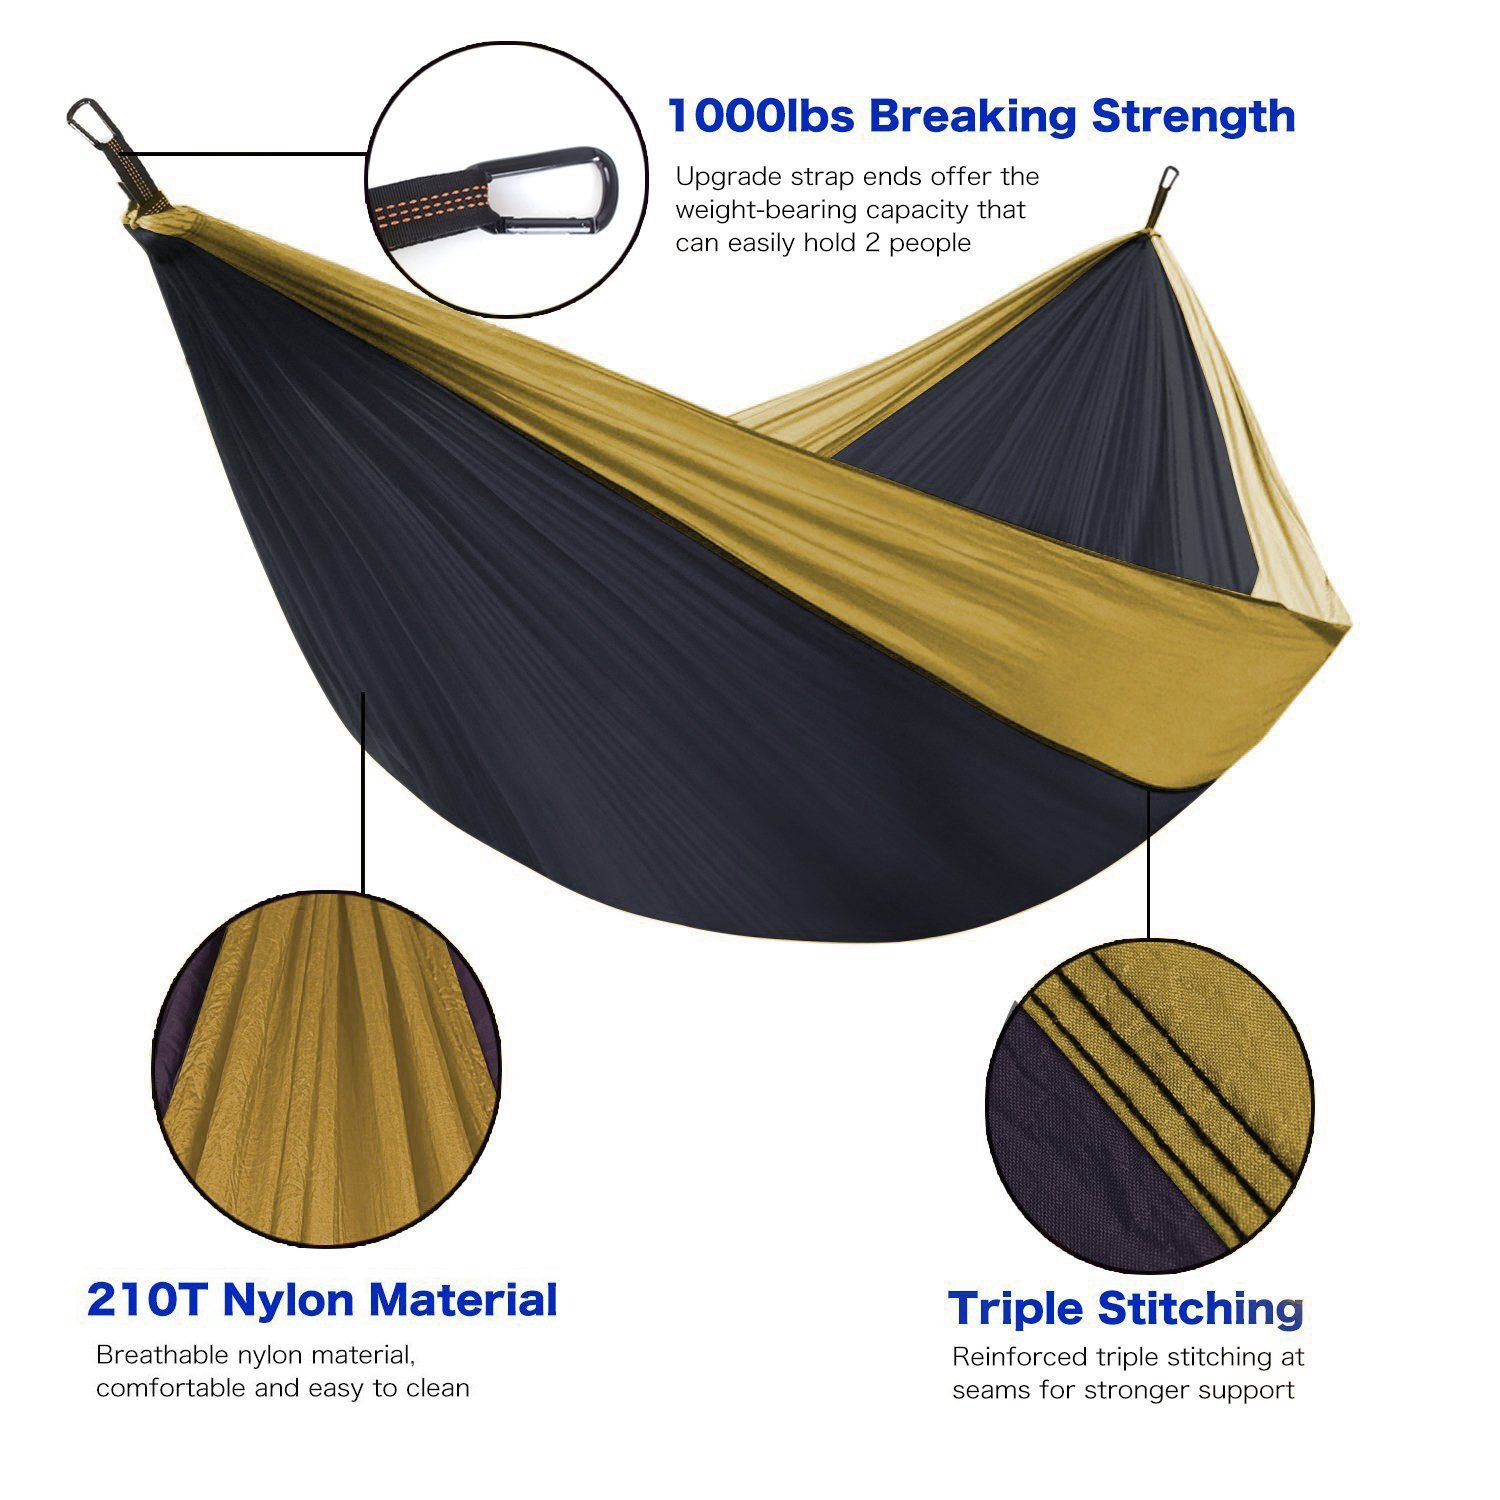 Unigear Single /& Double Camping Hammock Portable Lightweight Parachute Nylon Hammock with Tree Straps for Backpacking Camping Beach Travel Garden